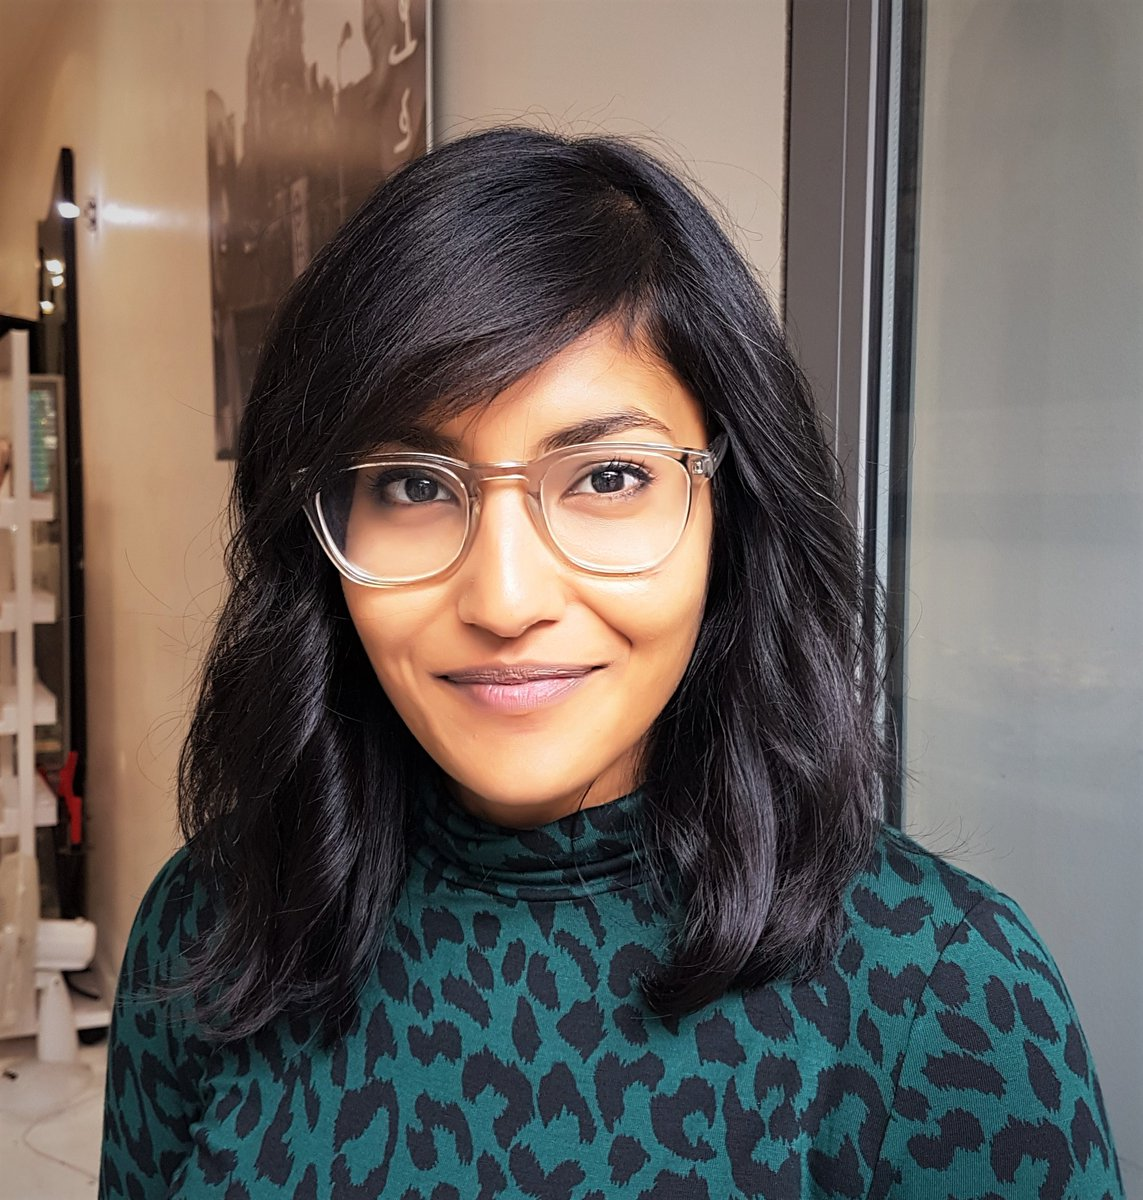 We're so proud to announce that Trisha Sircar, our Global Programme Director and #innovation champion has made the 2020 @MT_editorial's #35WomenUnder35 list. Congratulations Trisha!  View the full list here - https://t.co/3f38dwMrif https://t.co/2avYgOUQpX